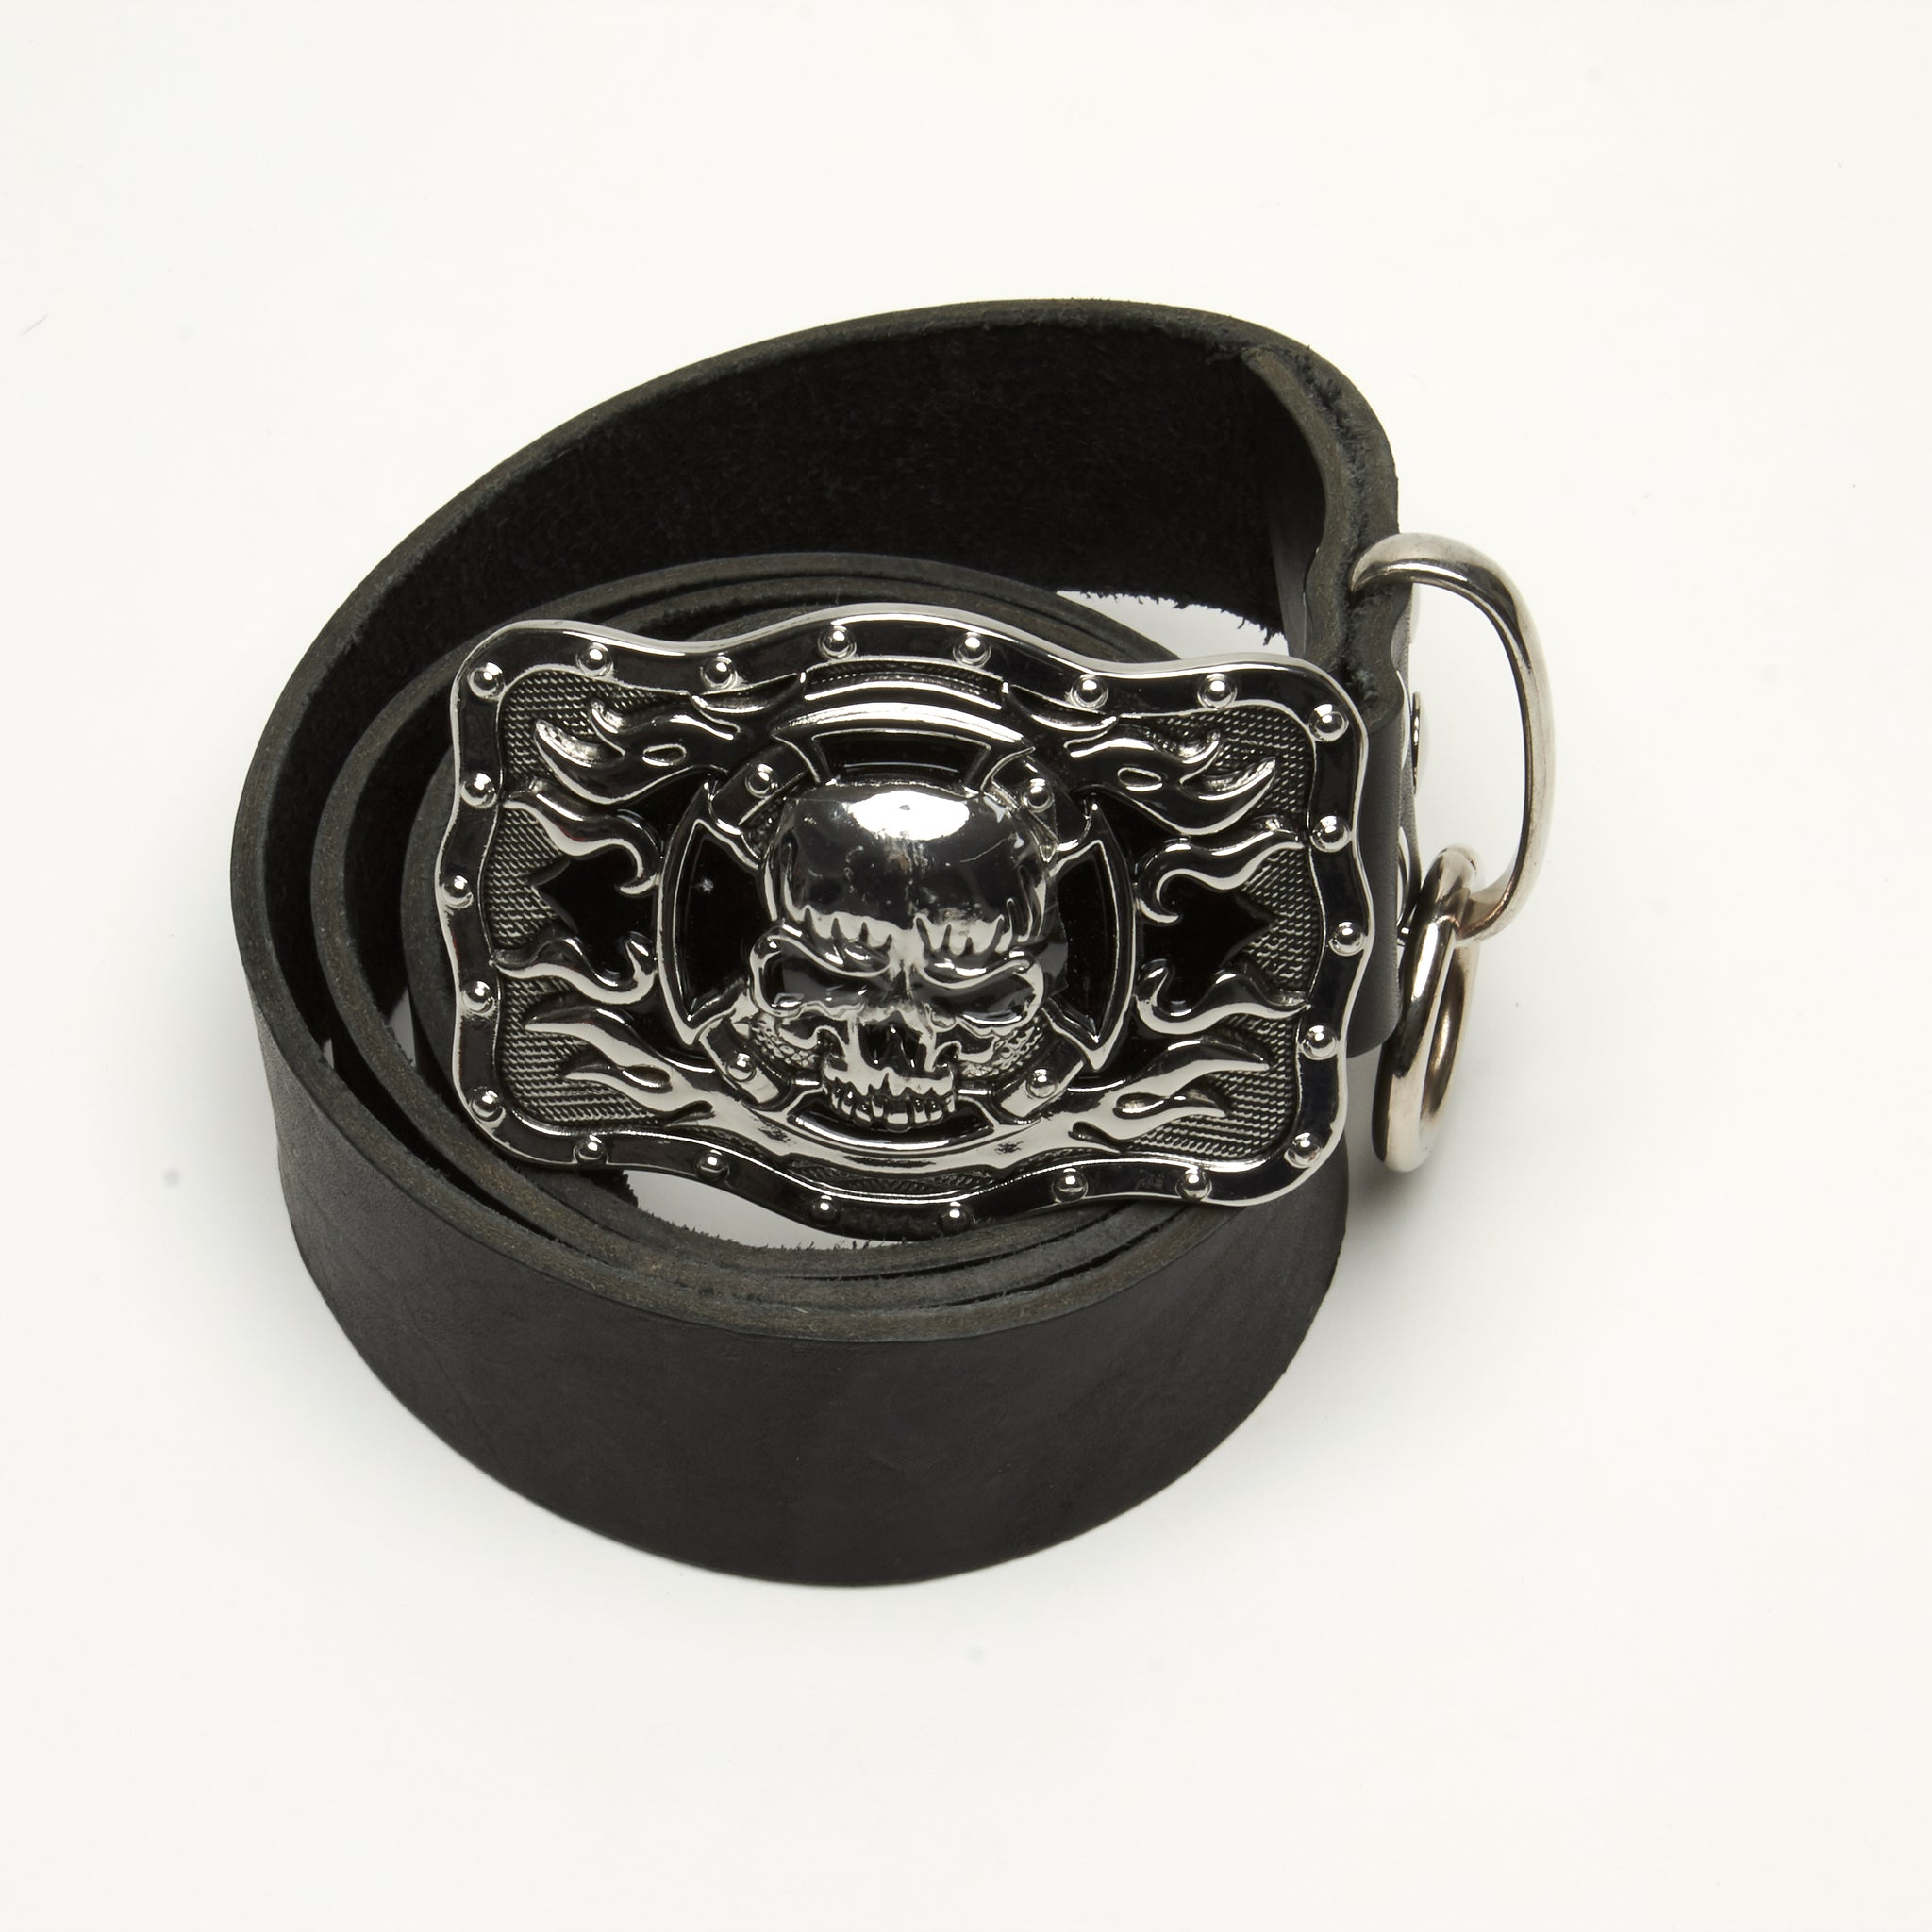 LEATHER BELT WITH HEAVY METAL AND BLACK ENAMEL SKULL BUCKLE ADORNED WITH THICK RING AT BELT LOOP. by NYET Jewelry.